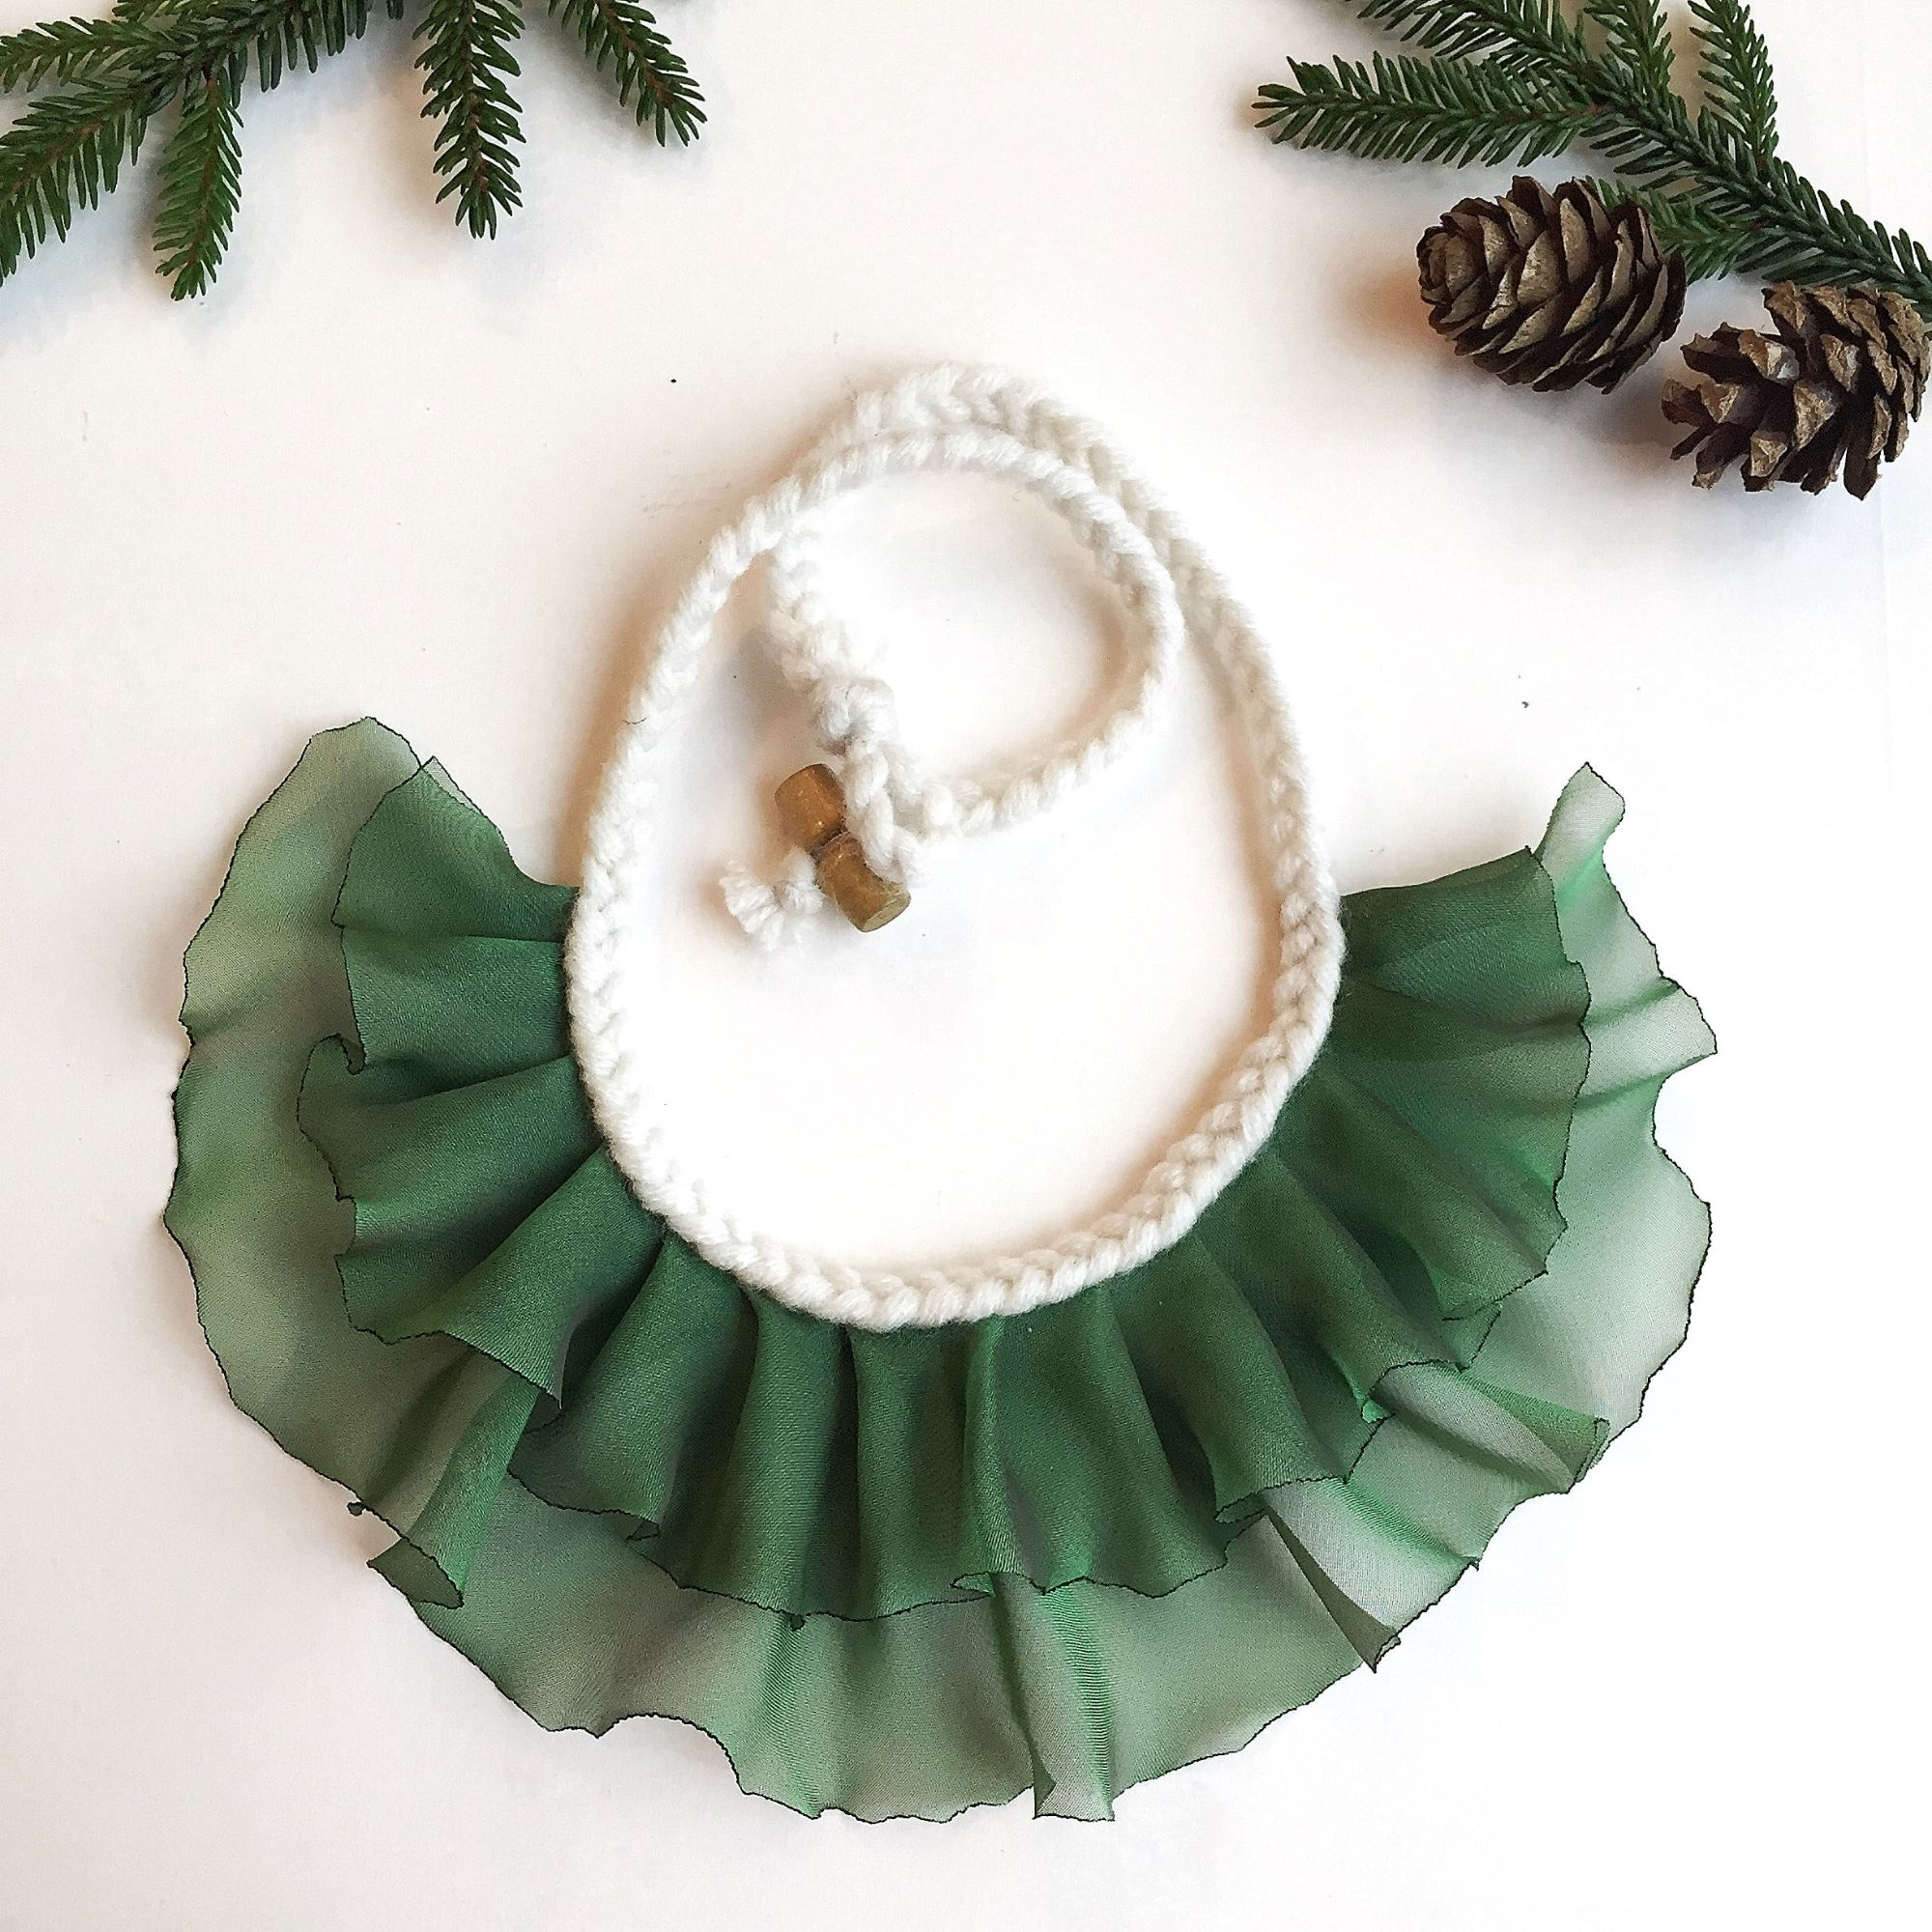 green statement necklace, greenery gift for her, fashion necklace, textile necklace